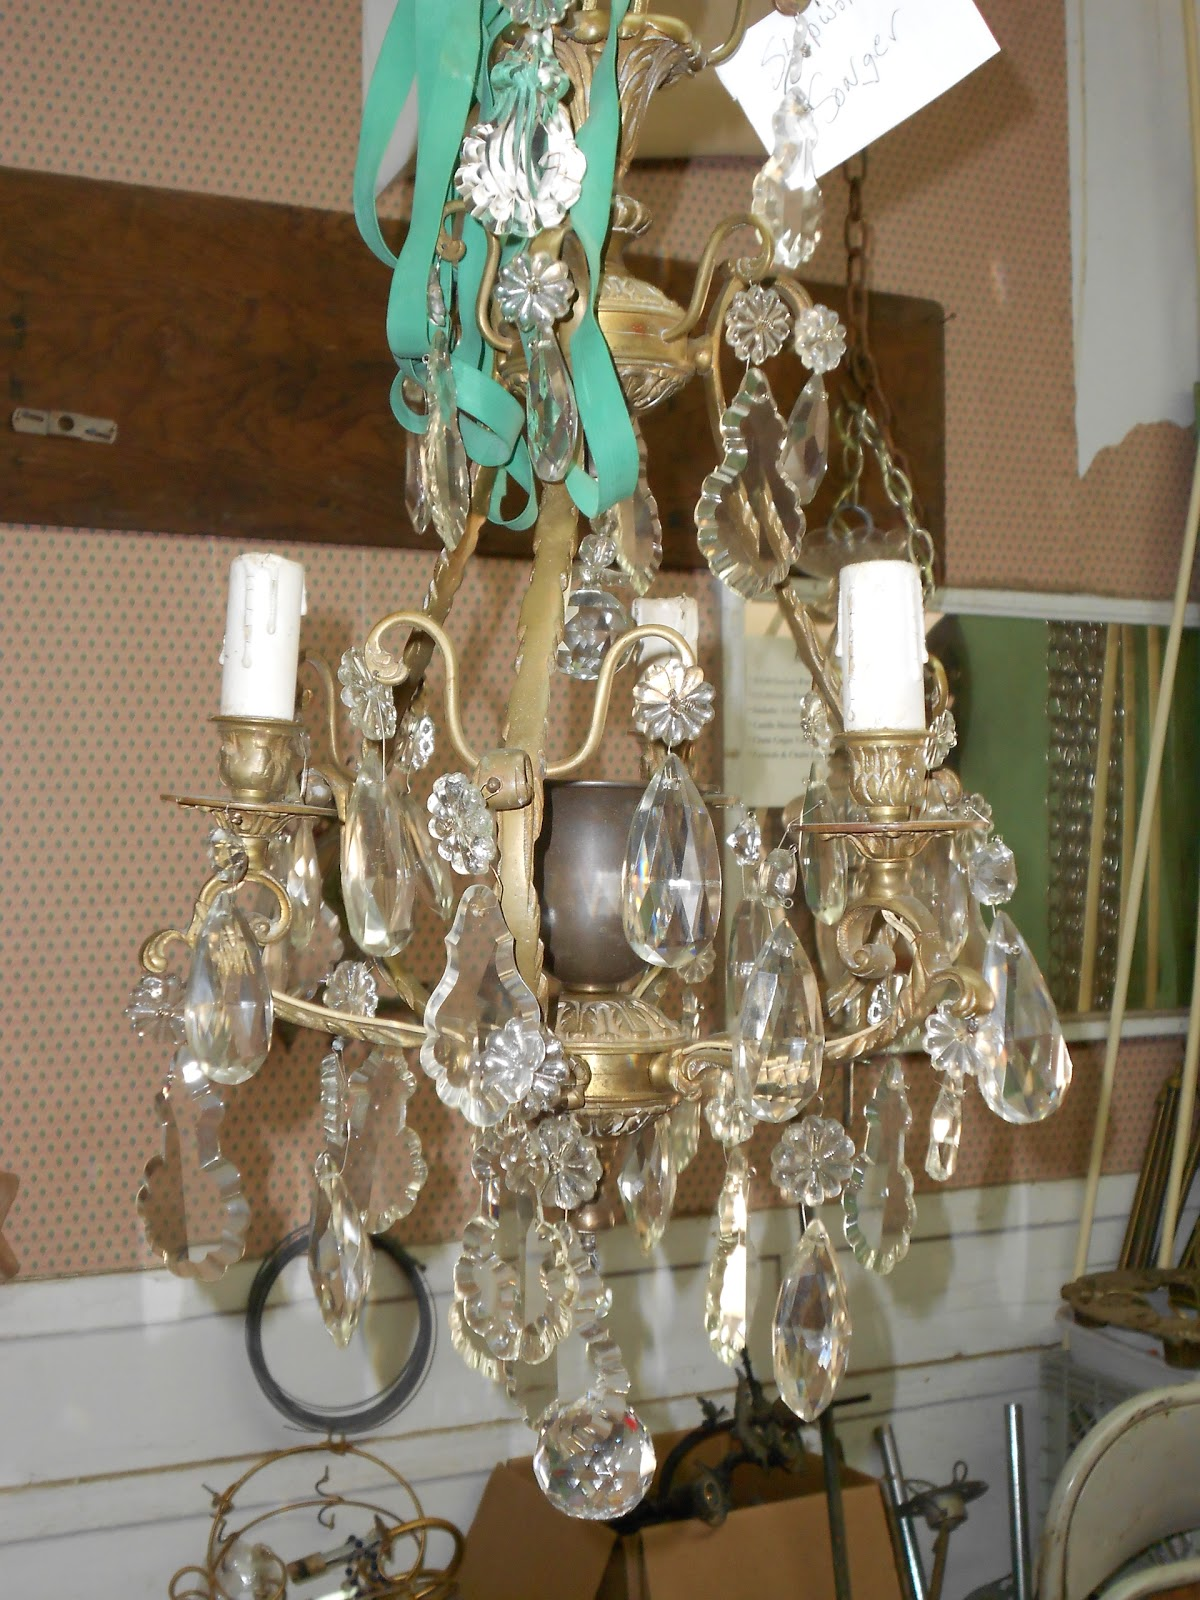 My faux french chateau french chandeliers and rewiring smallest of the two french chandeliers needs to be rewired and cleaned mozeypictures Choice Image